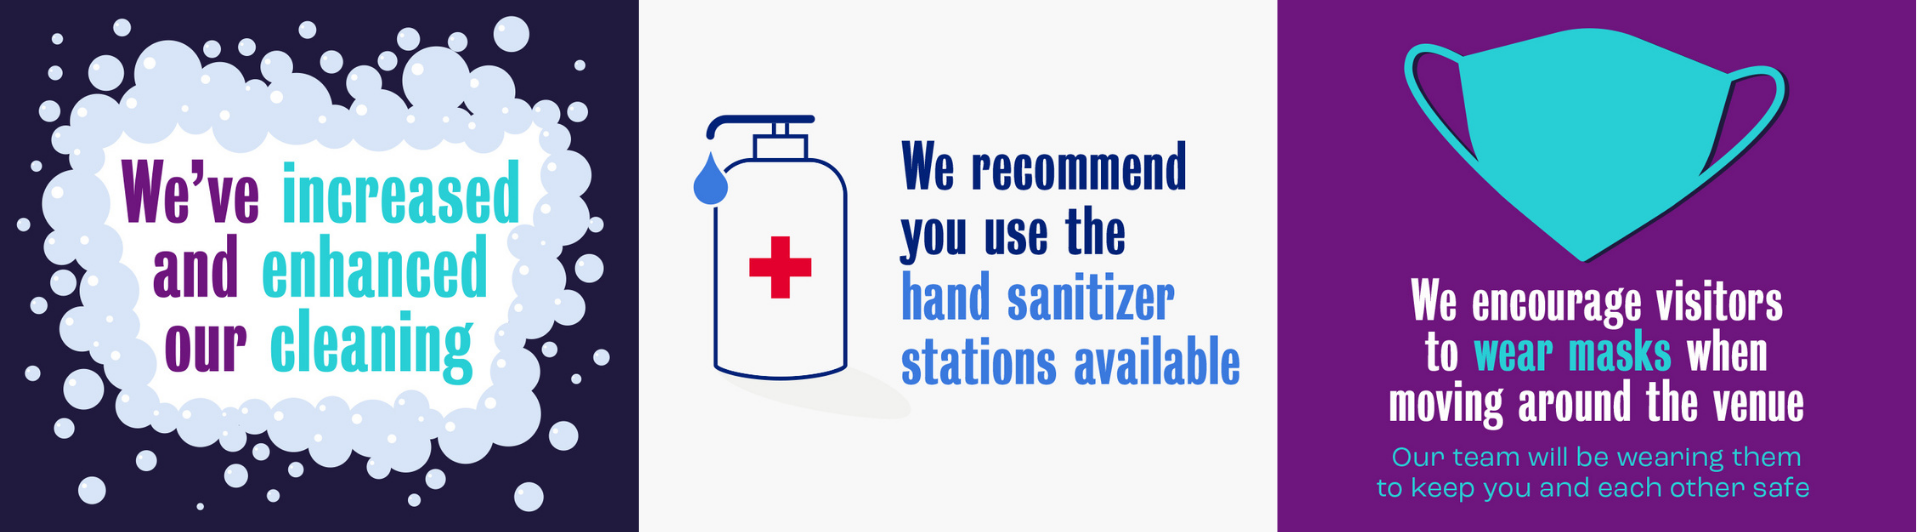 We've increased and enhanced our cleaning. We recommend you use the hand sanitiser stations available. We encourage visitors to wear masks when moving around the venue. Our team will be wearing them to keep you and each other safe.